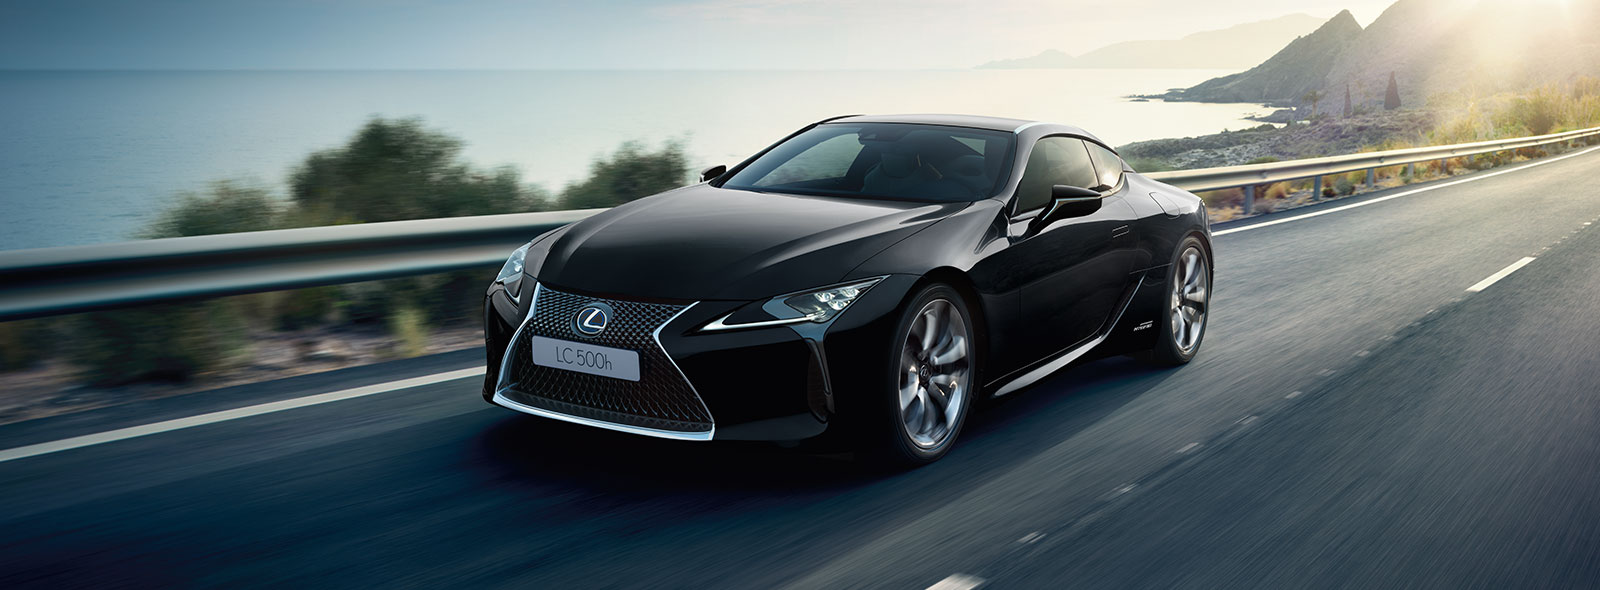 2017 Lexus LC 500h Driving Gallery 001